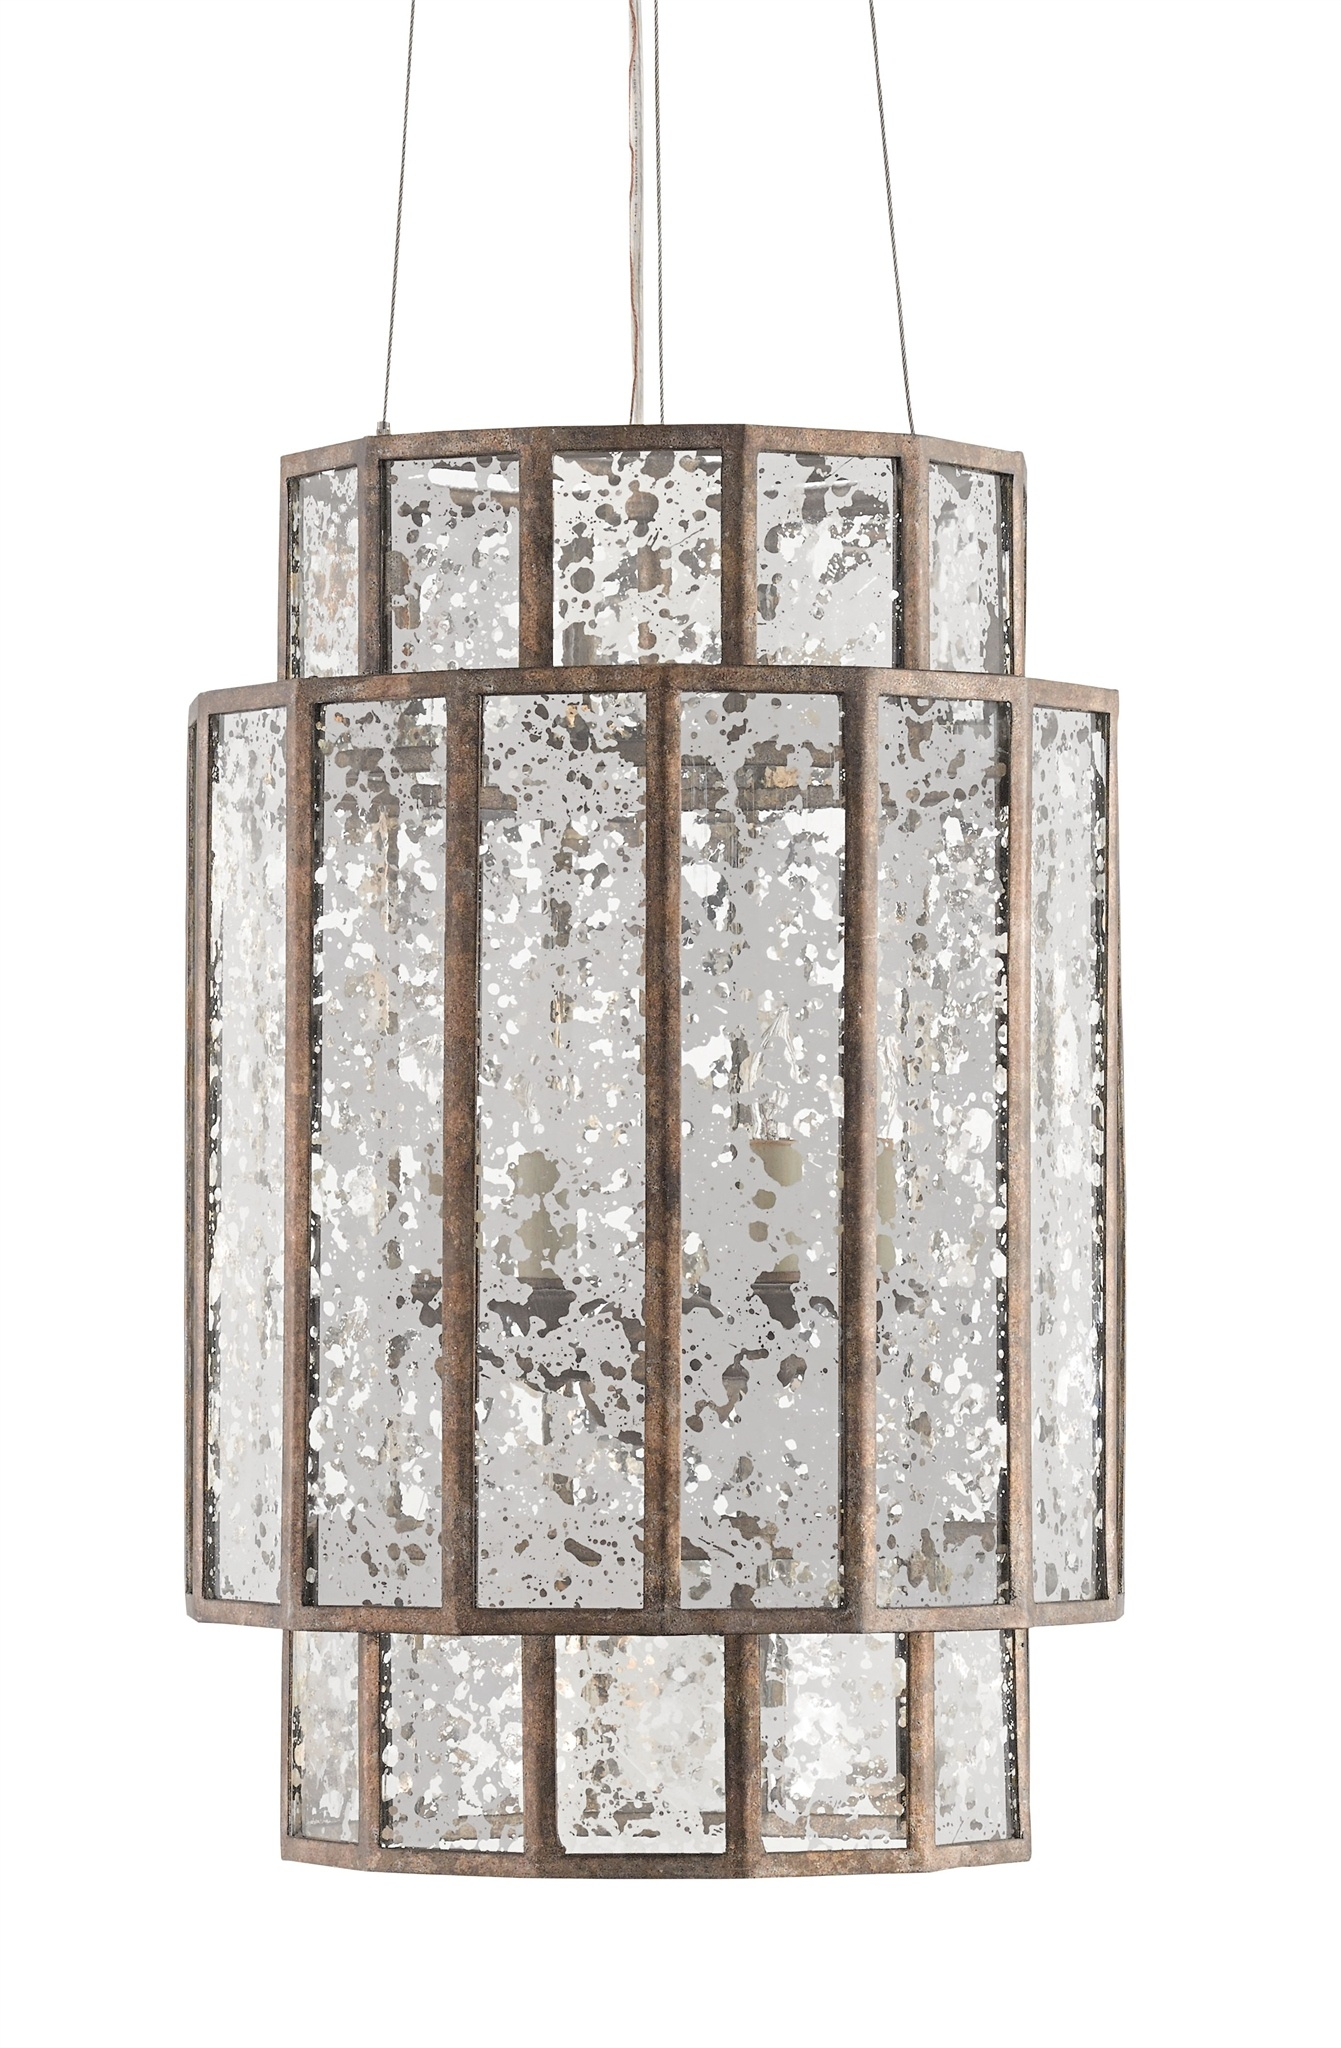 Chandelier by currey and company 9493 cc download image fantasia chandelier by currey and company arubaitofo Gallery